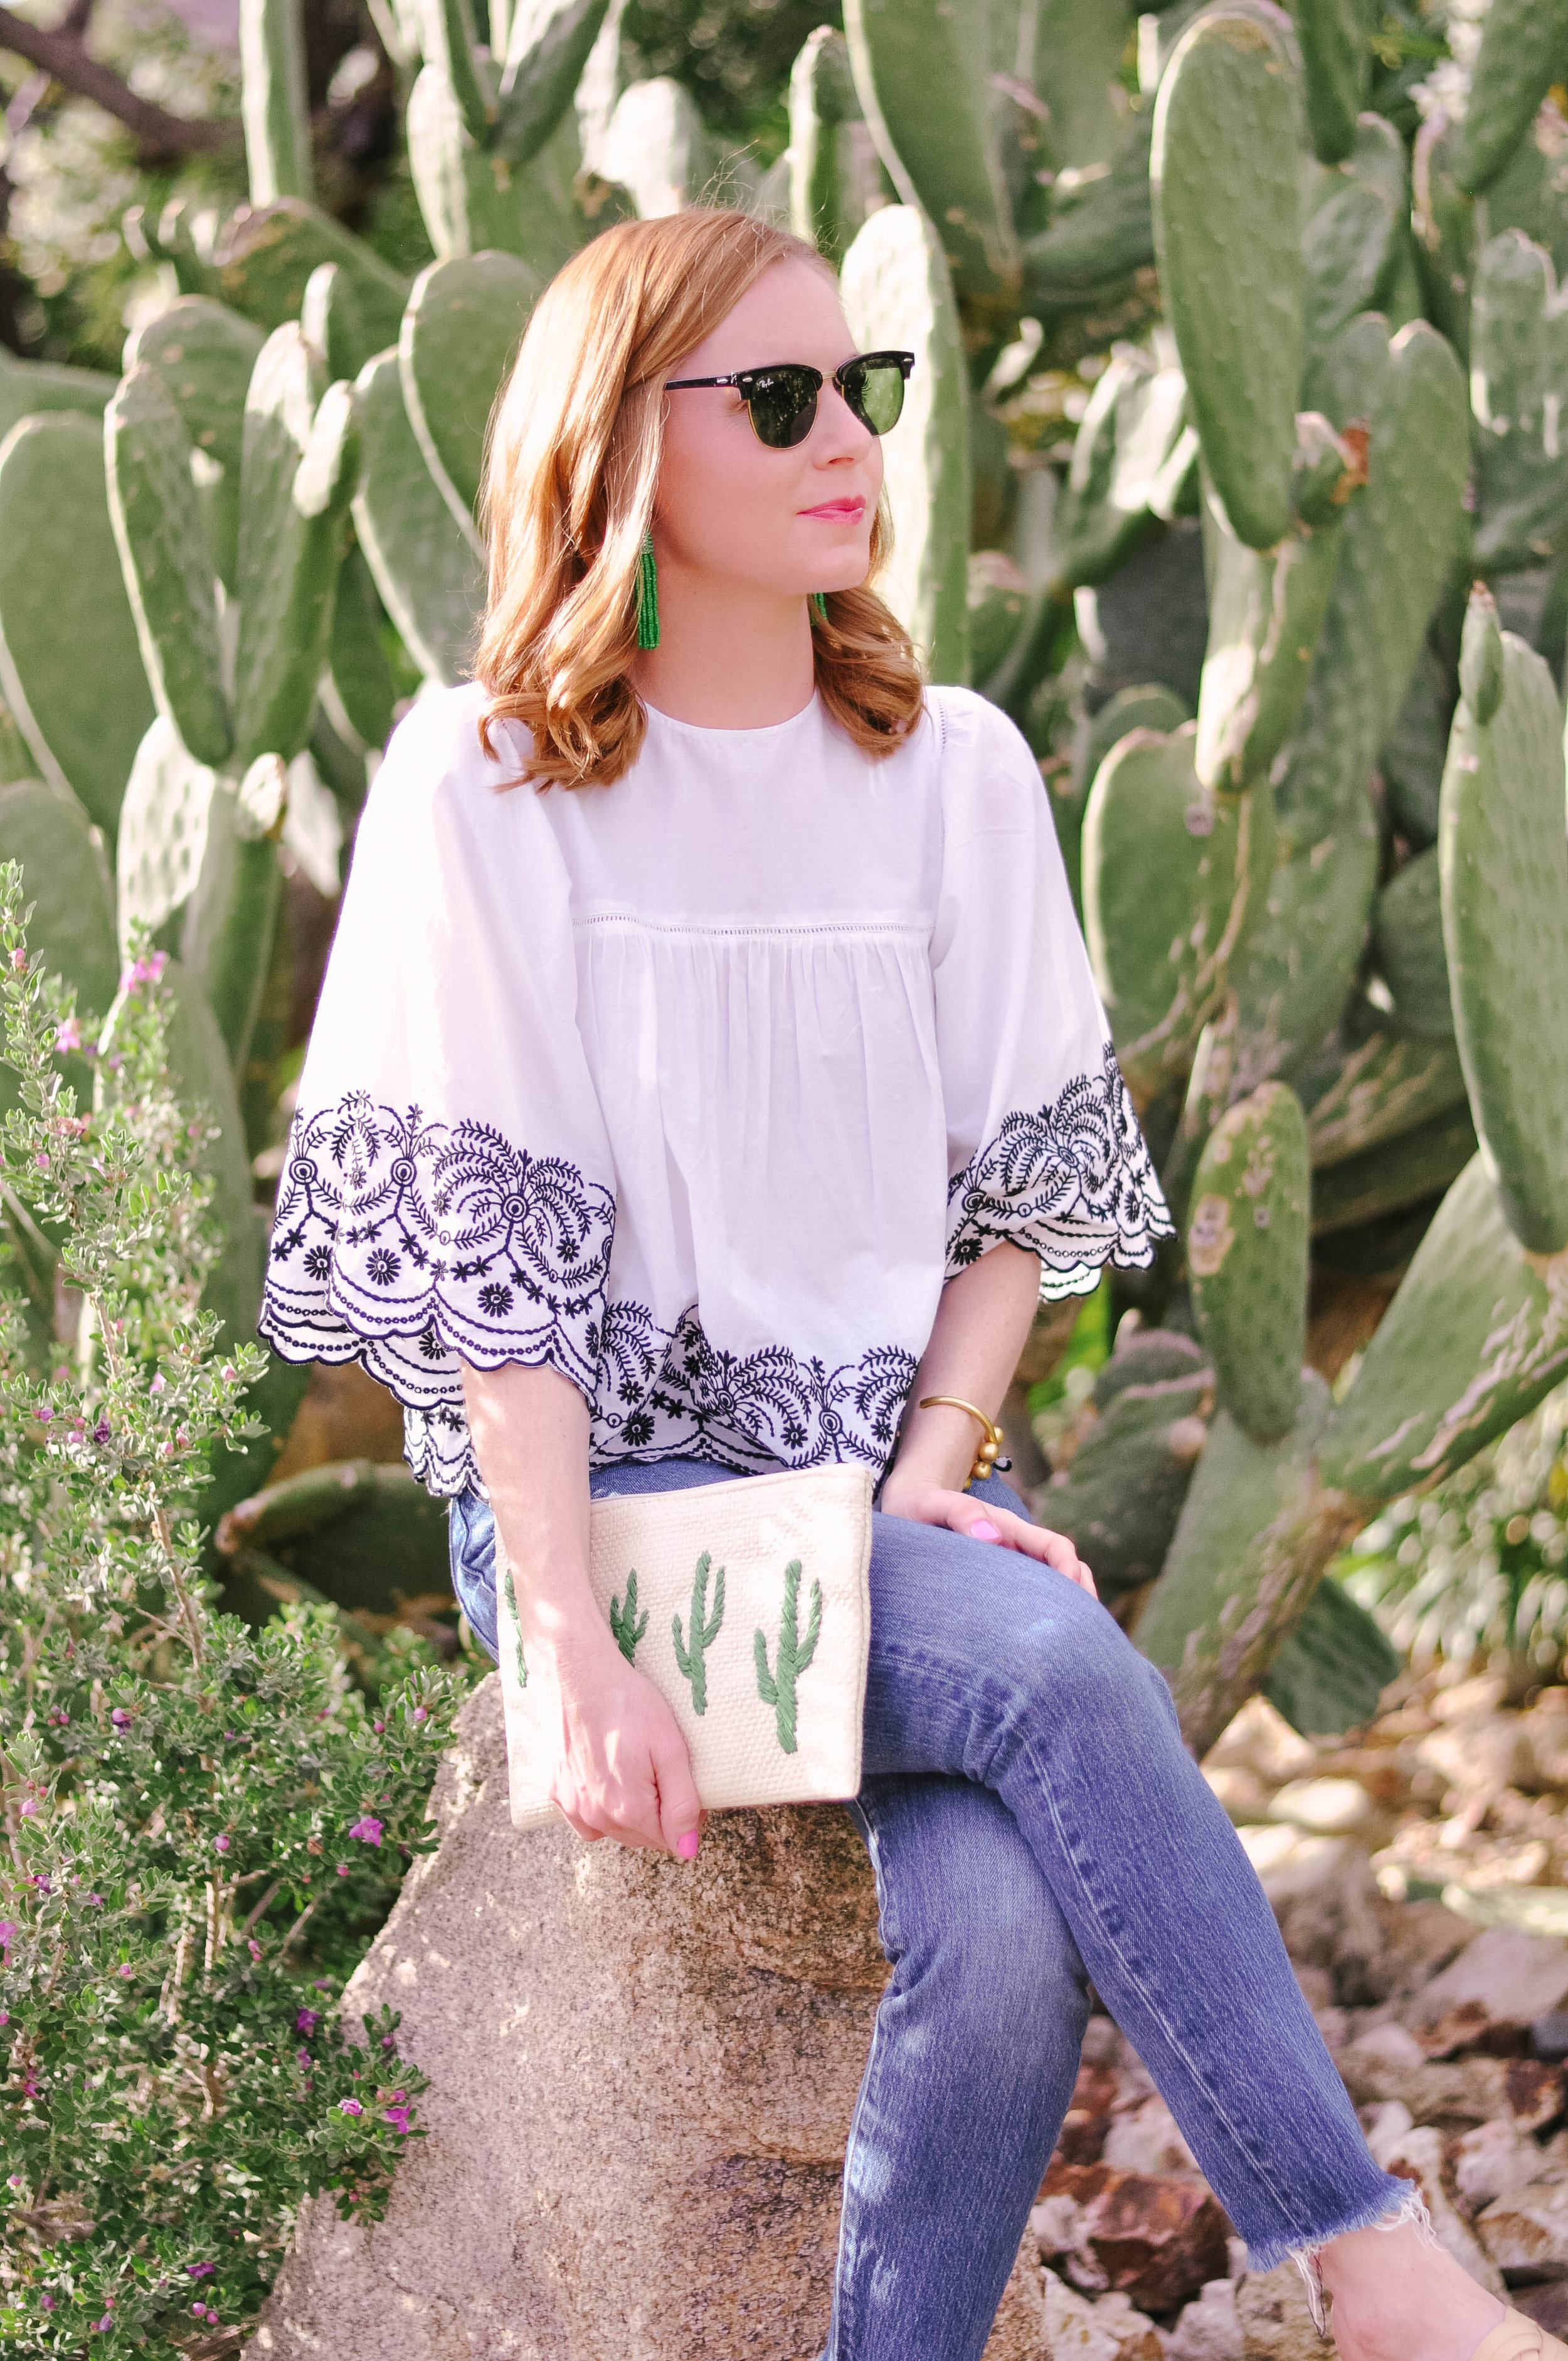 Woman in white top and sunglasses next to cactus